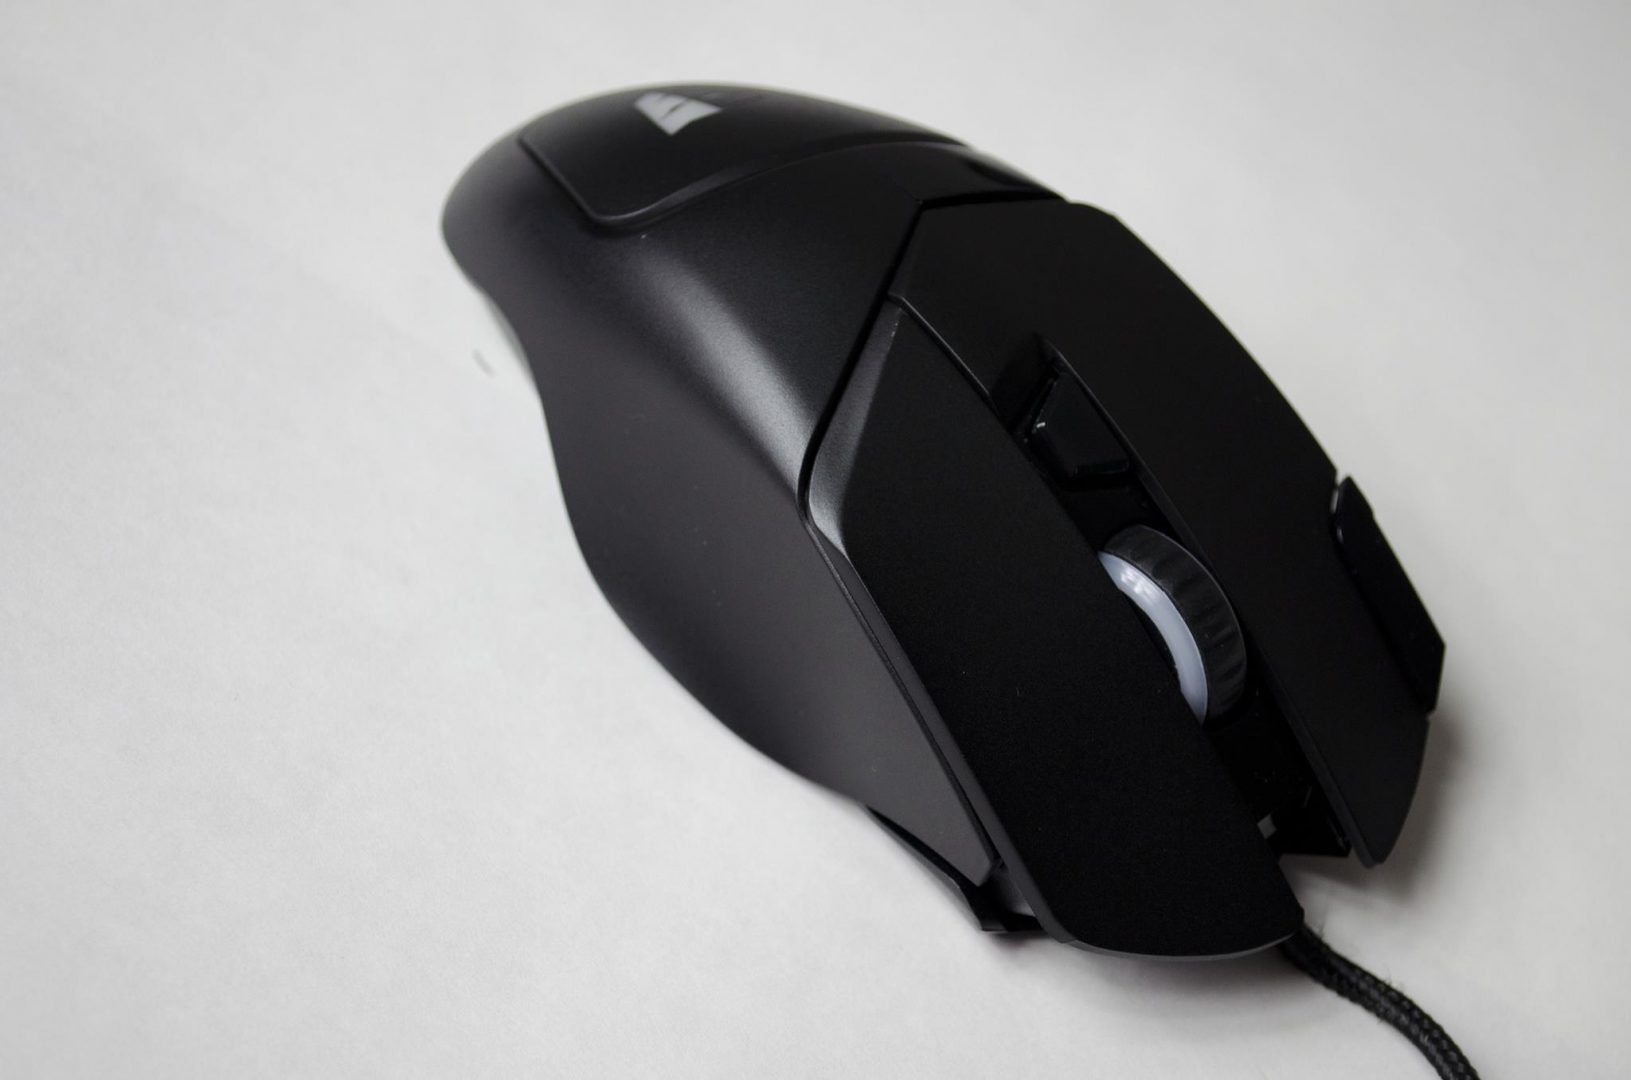 tesoro ascalon spectrum rgb gaming mouse_13